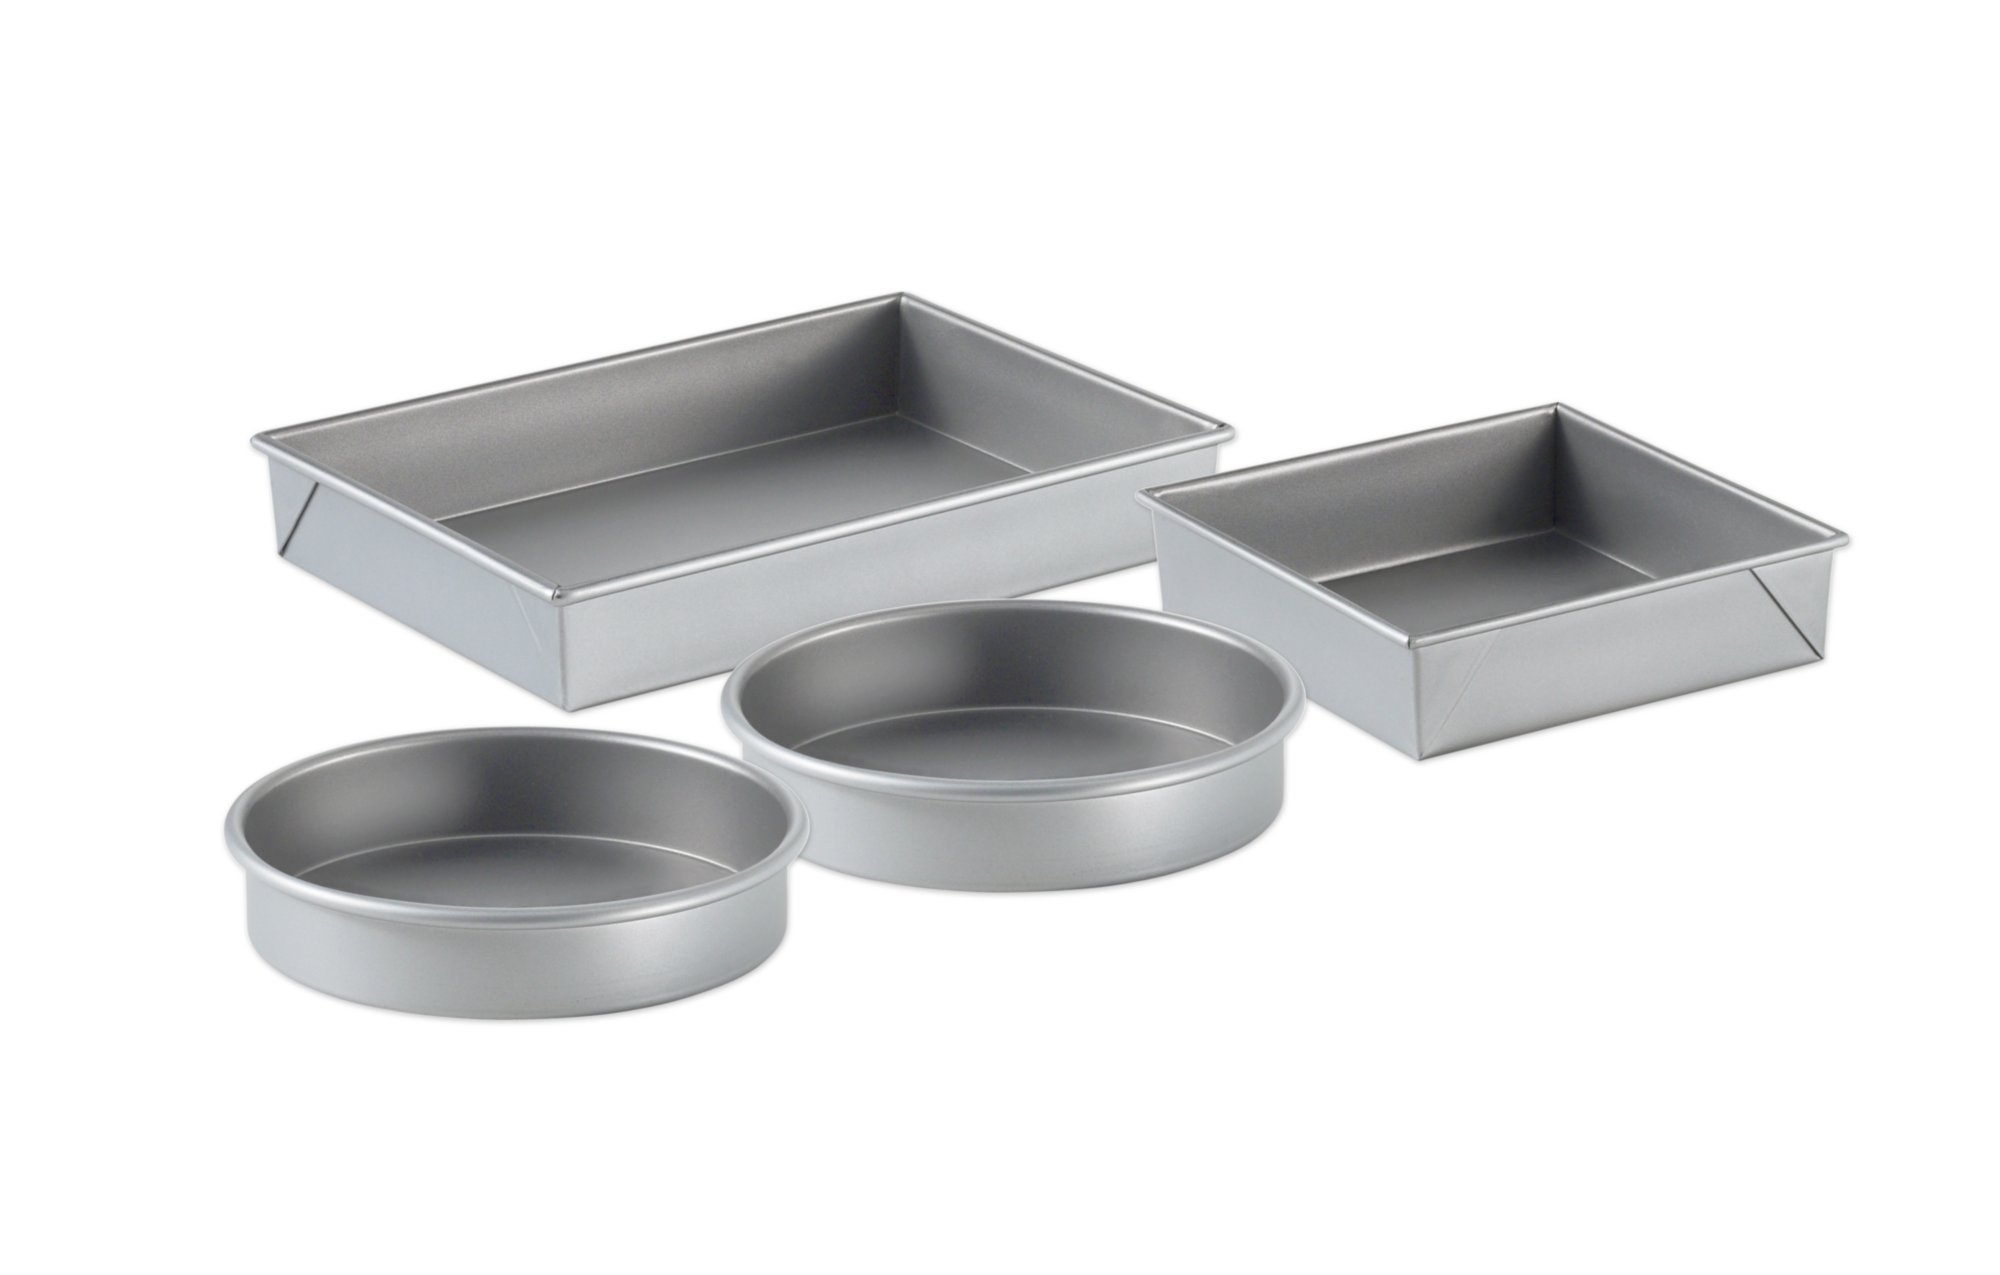 Bakeware Comparison